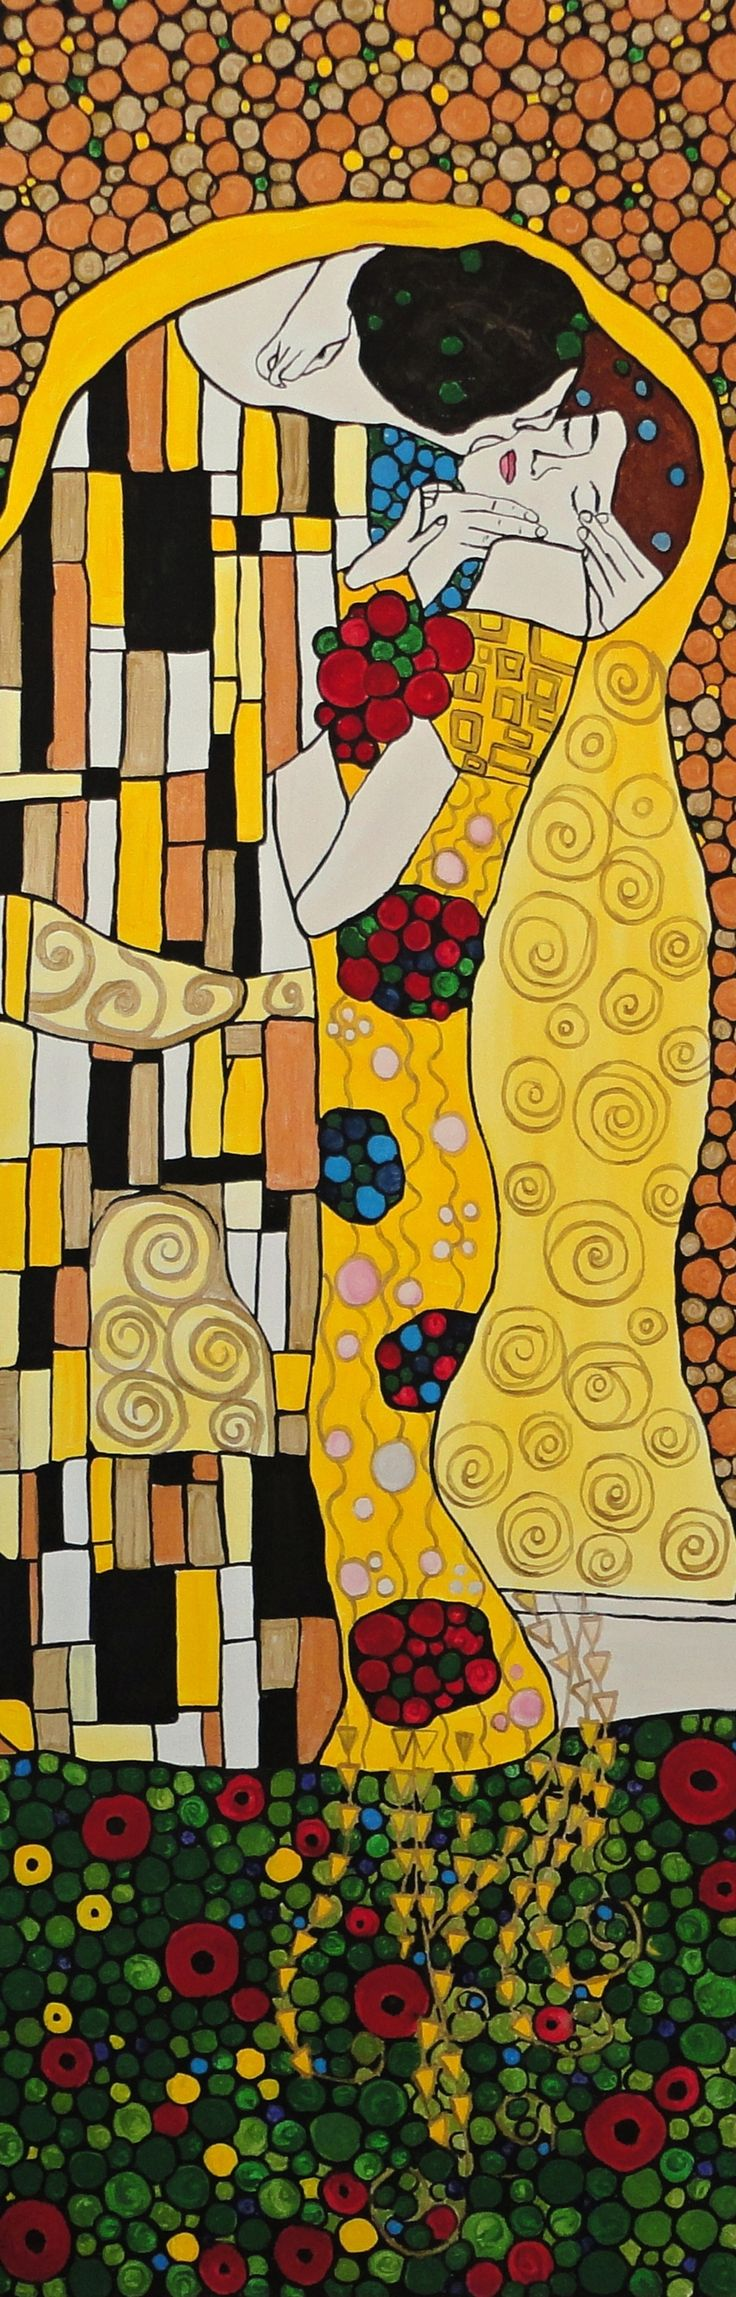 "Inspired by my favorite artist Gustav Klimt. My version of ""The Kiss"" on a 12''x36''x.75'' framed gallery wrapped canvas. Visit me on my website at www.olynukartanddesign.com"